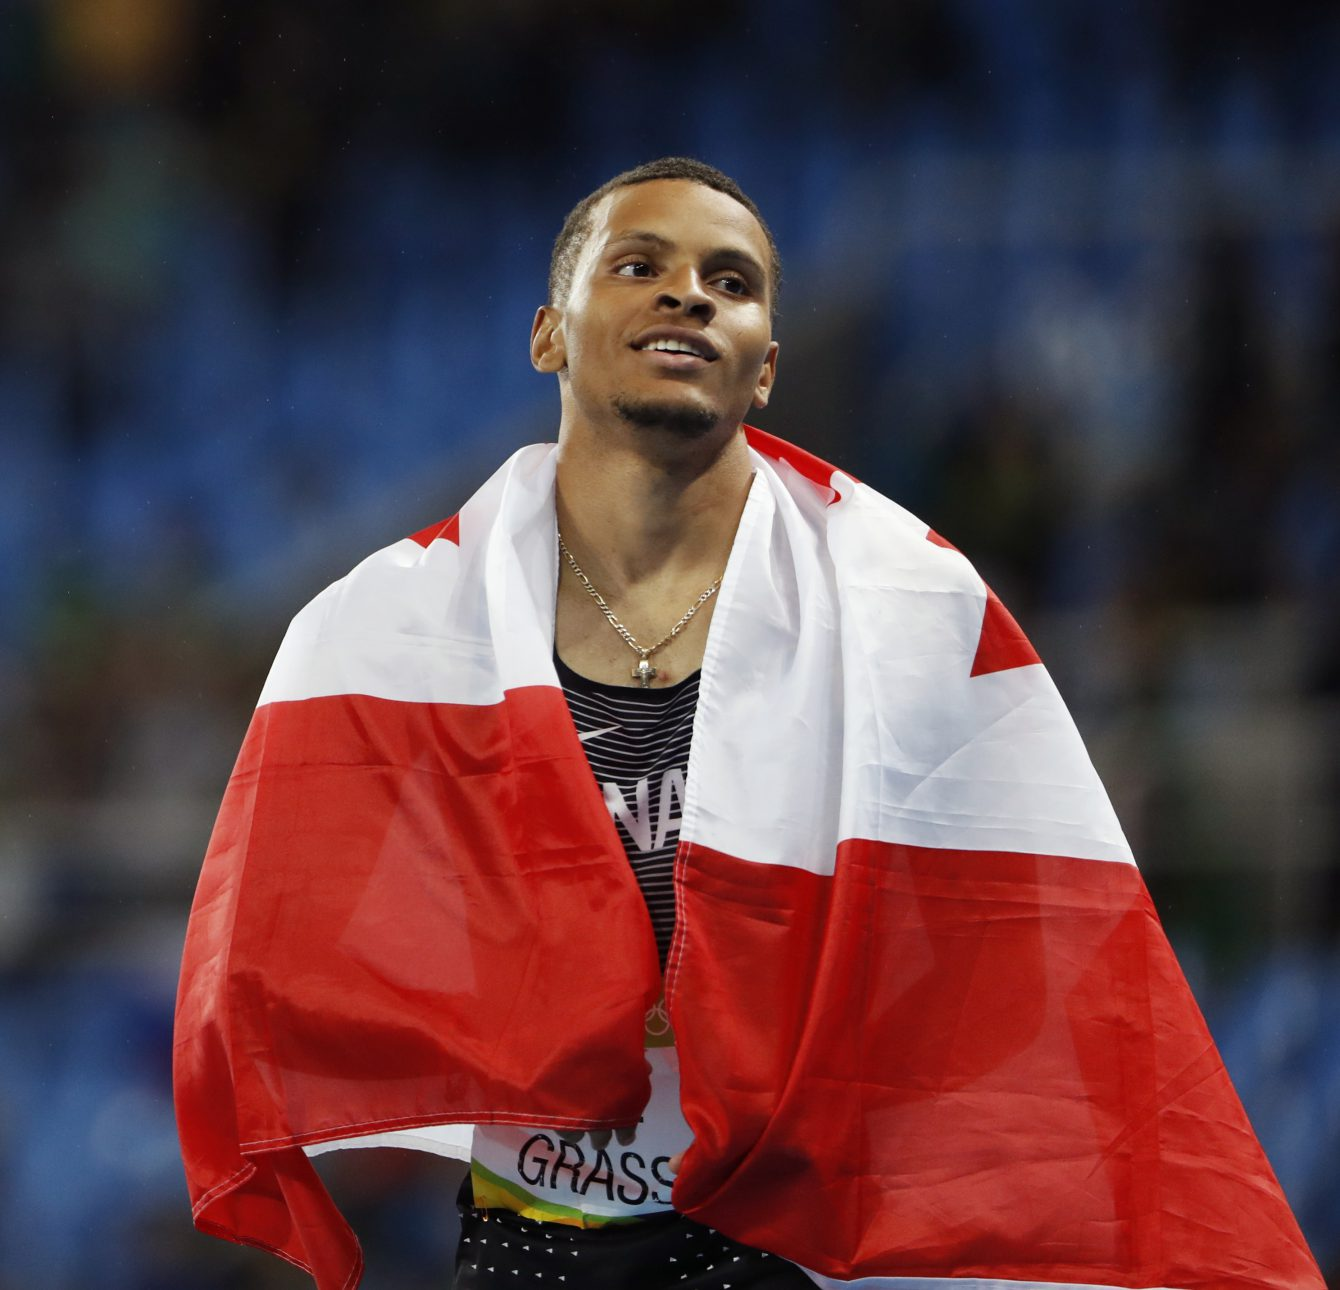 Canada's Andre De Grasse celebrates silver in the men's 200m final at the 2016 Olympic Summer Games in Rio de Janeiro, Brazil on Thursday, Aug. 18, 2016. (photo/ Stephen Hosier)